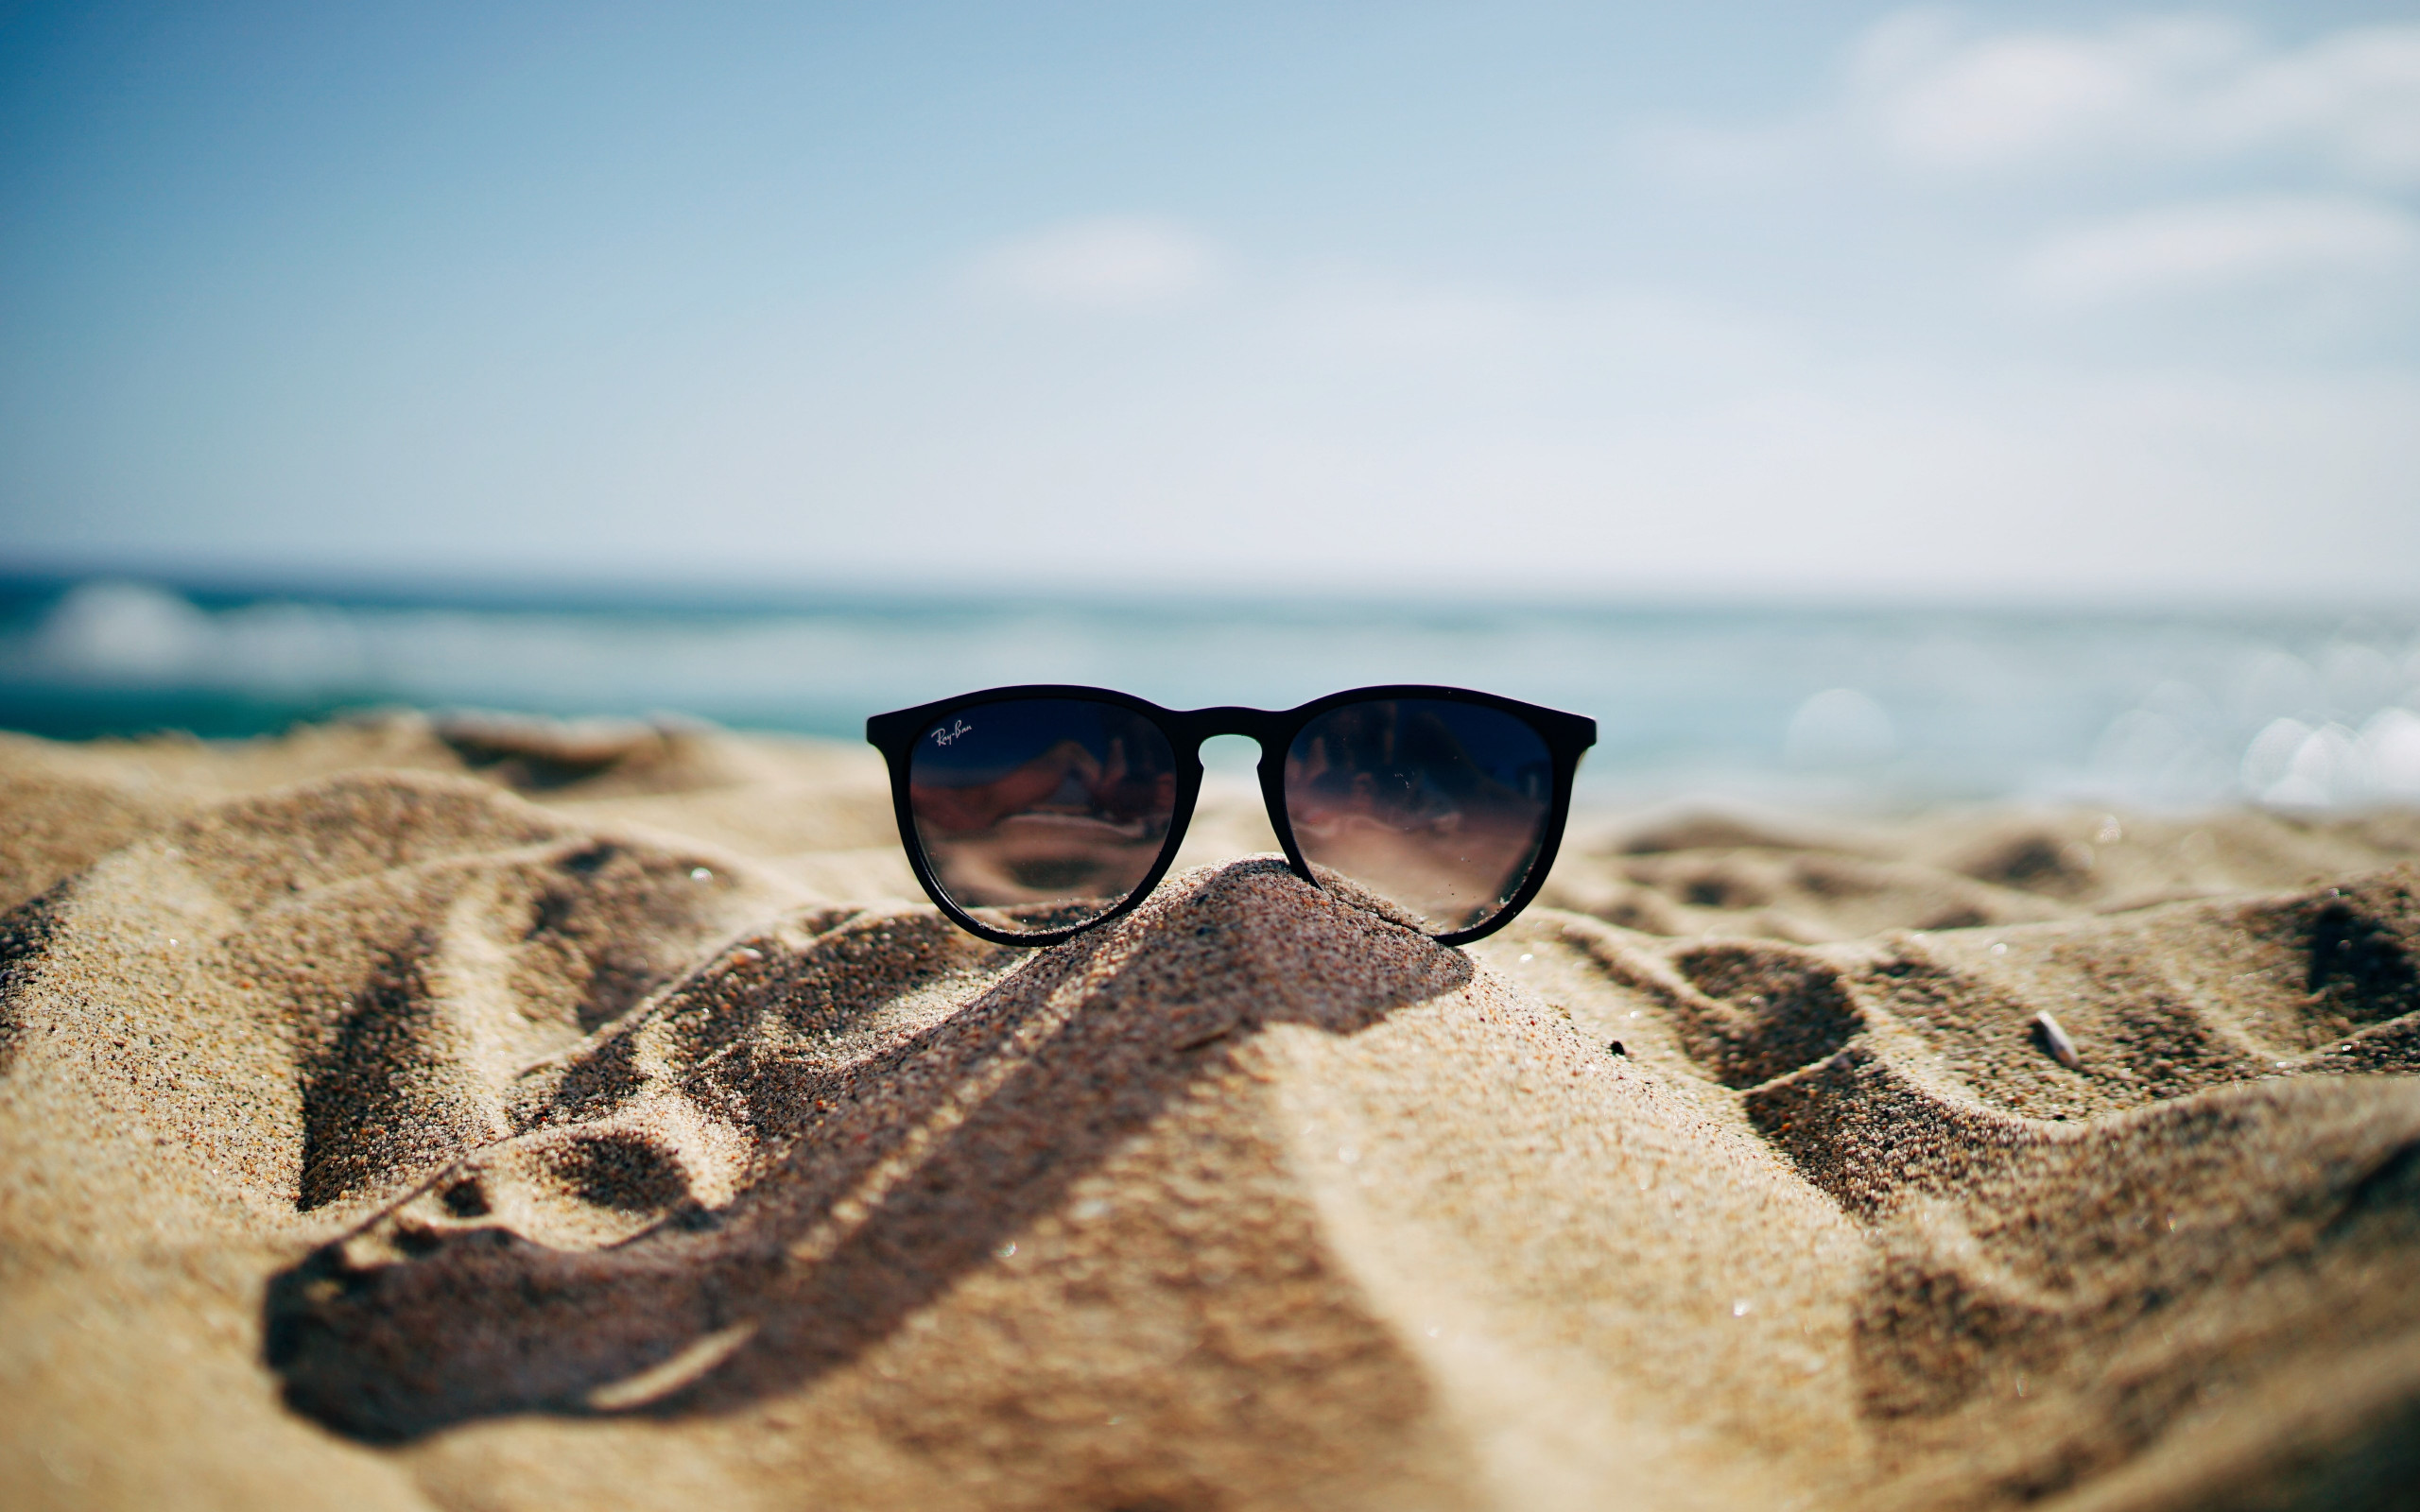 Ray Ban sunglasses on hot sand beach wallpaper 2560x1600